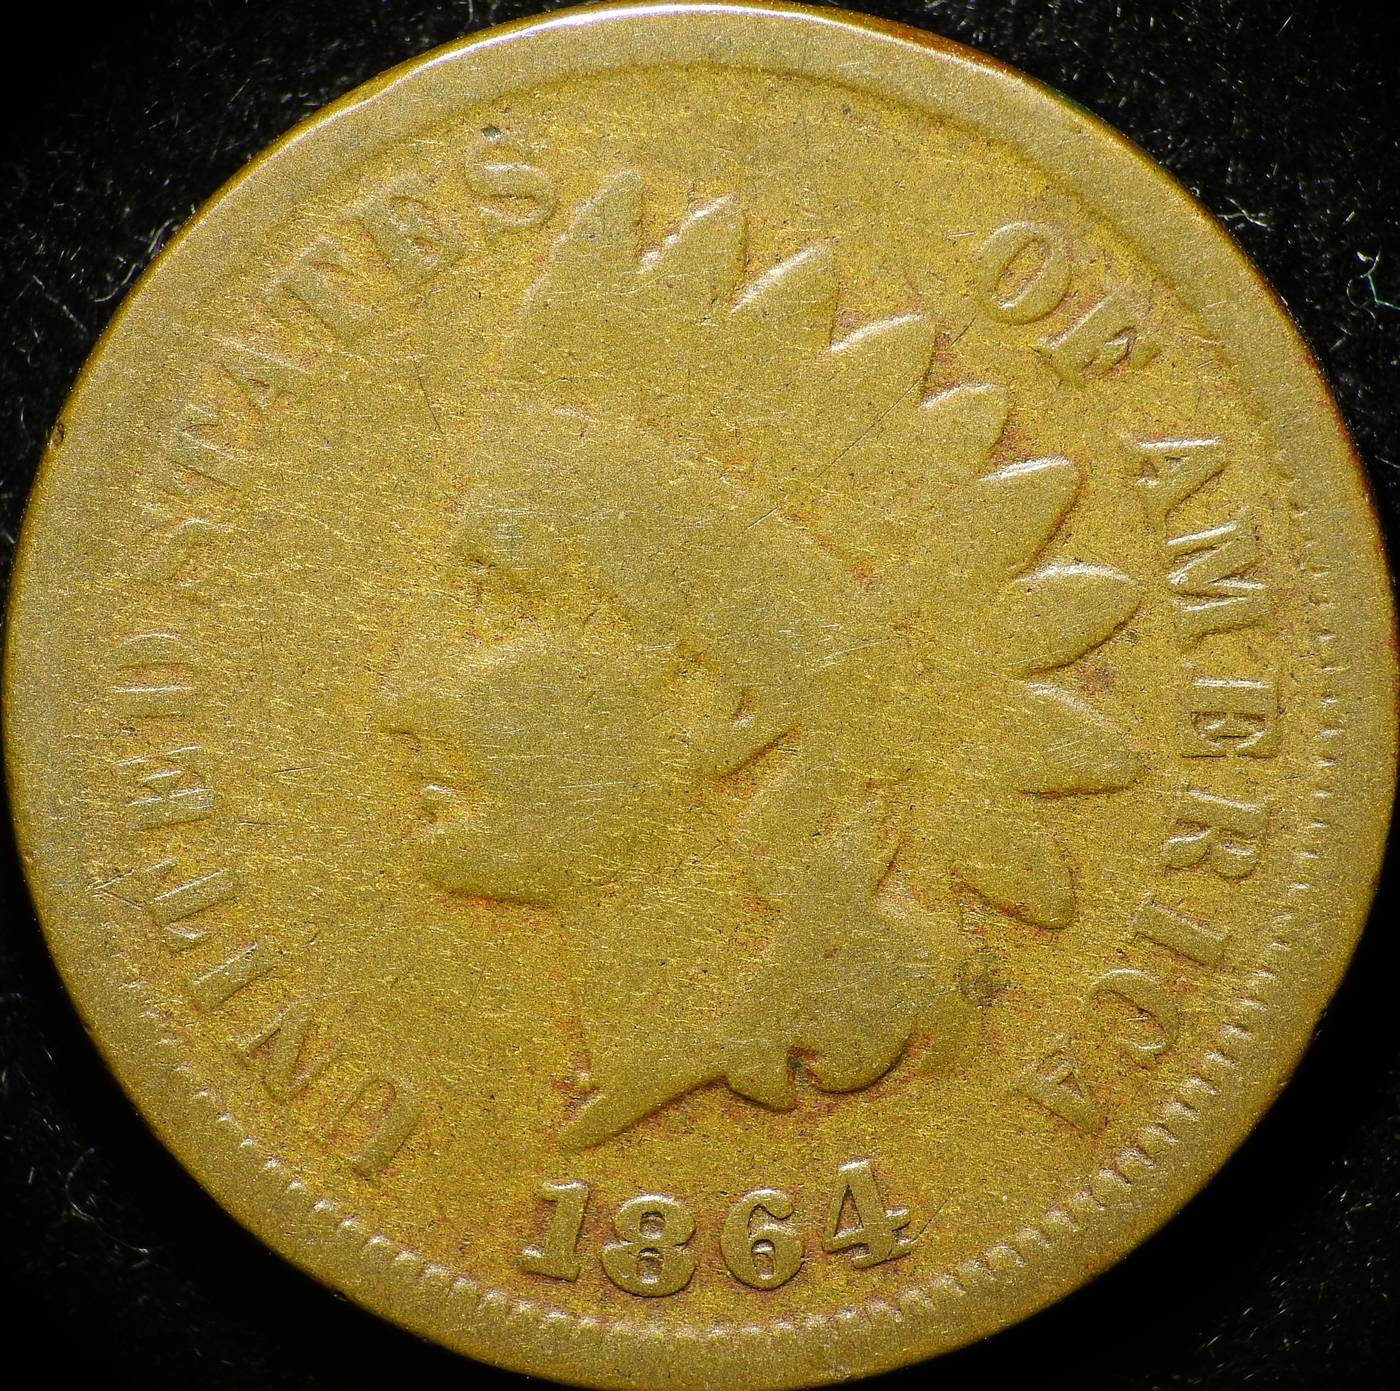 1864 L RPD-011 - Indian Head Penny